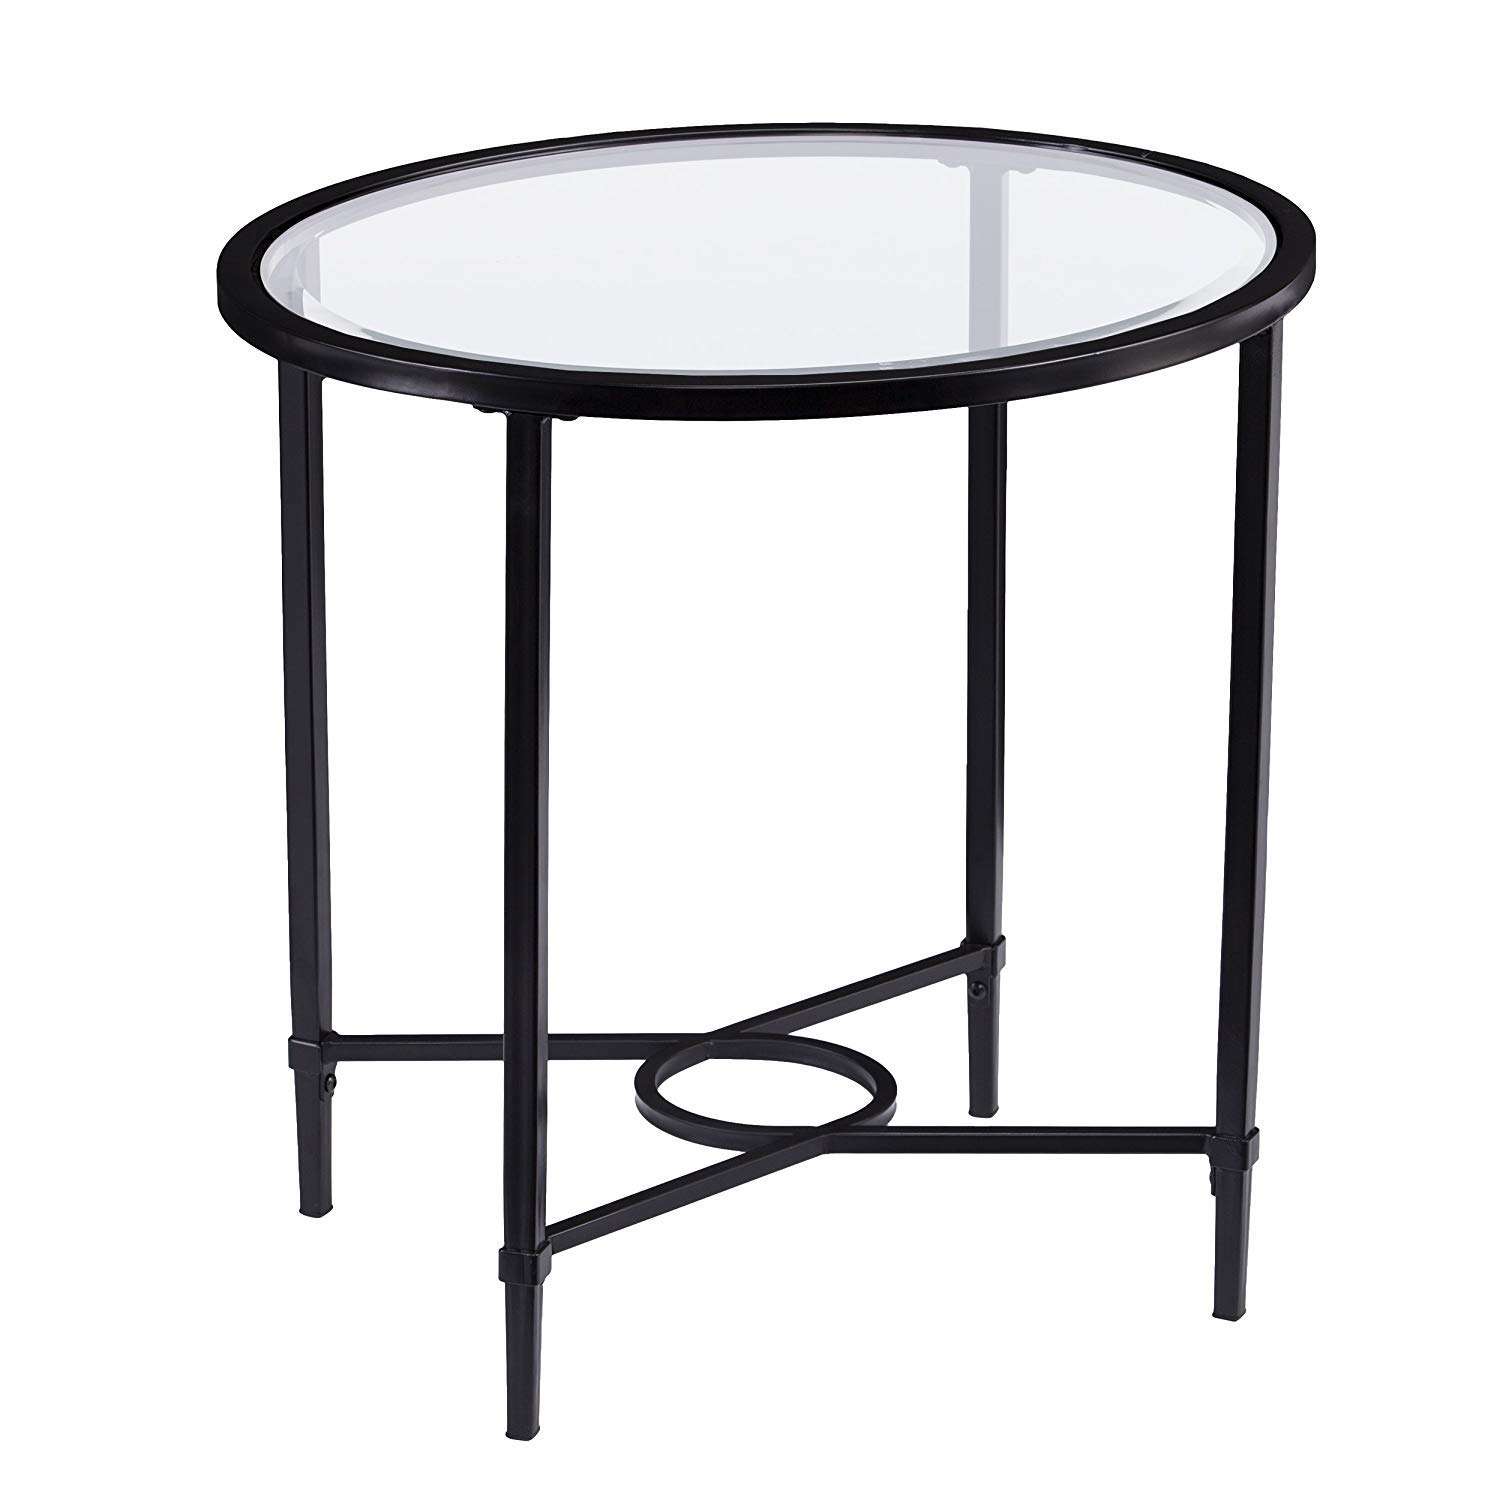 round glass top end table black oval kitchen dining tables brown couch curtains small bedside unit north shore room set modern orange bedroom furniture sizes mirrored accent dark